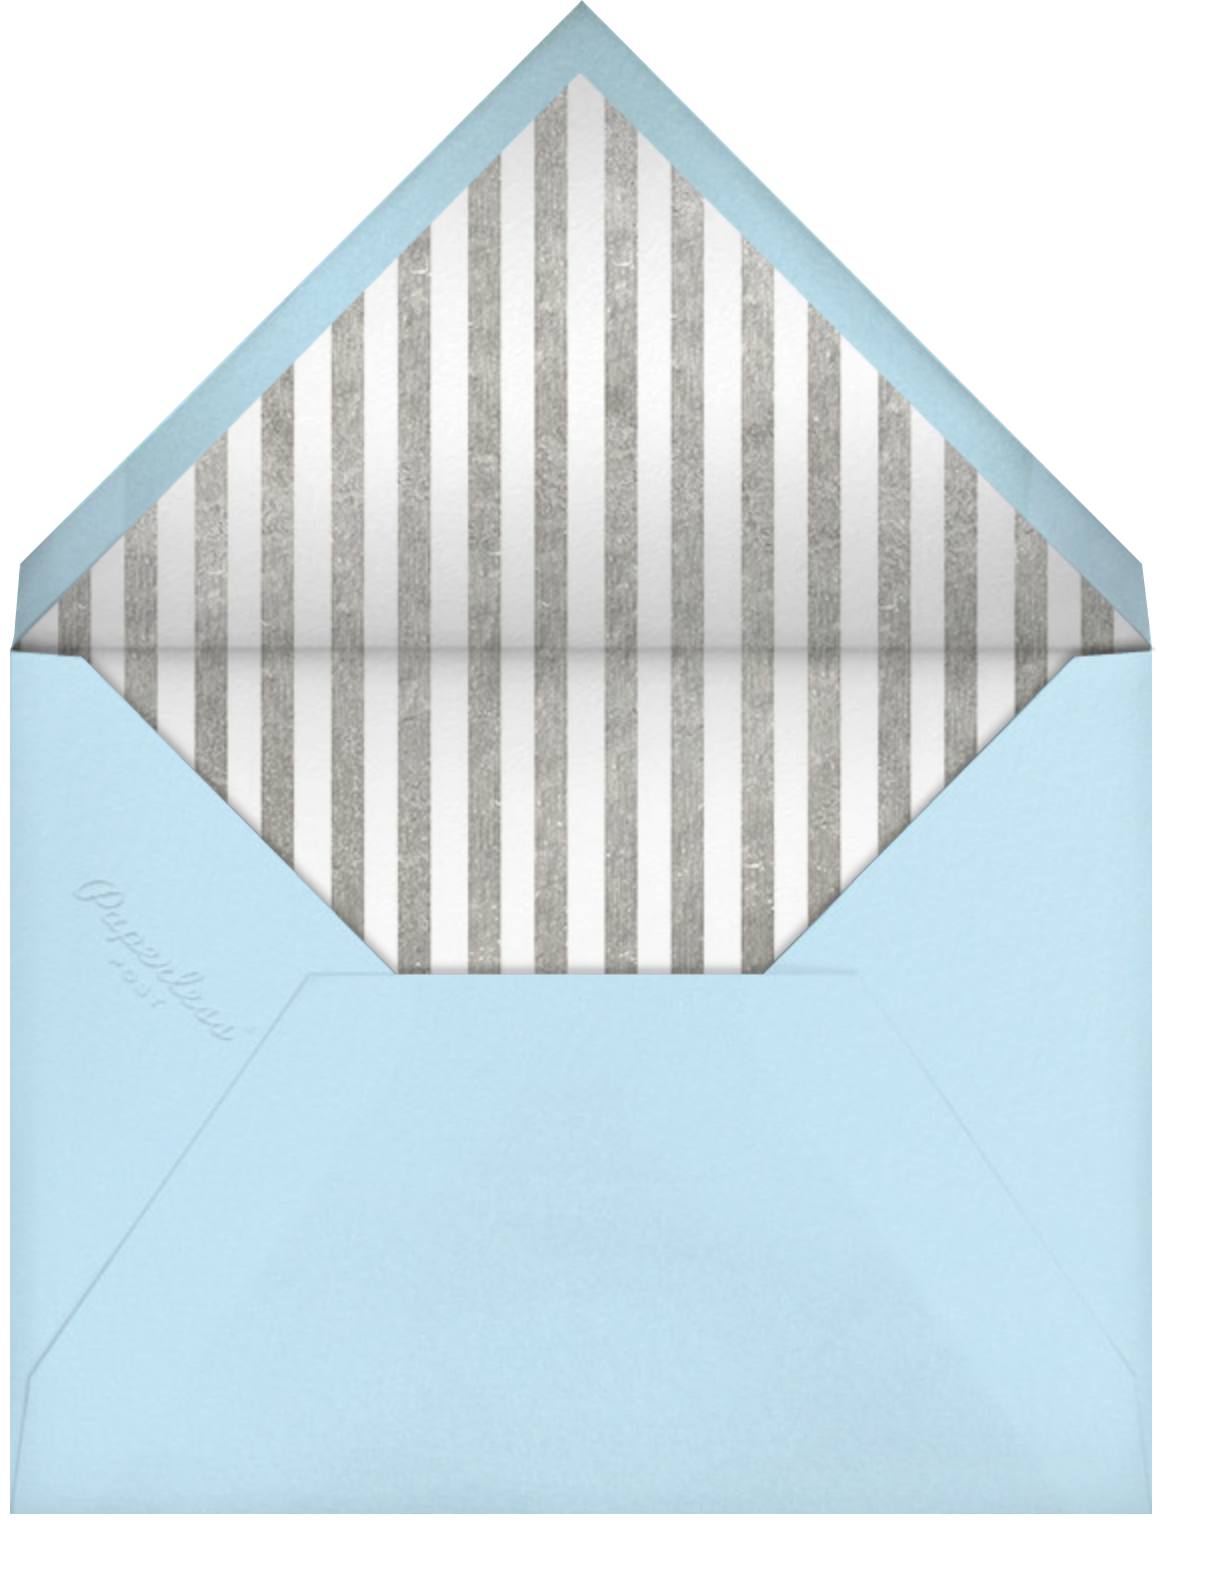 Holidays Gallery (Square) - Paperless Post - Envelope